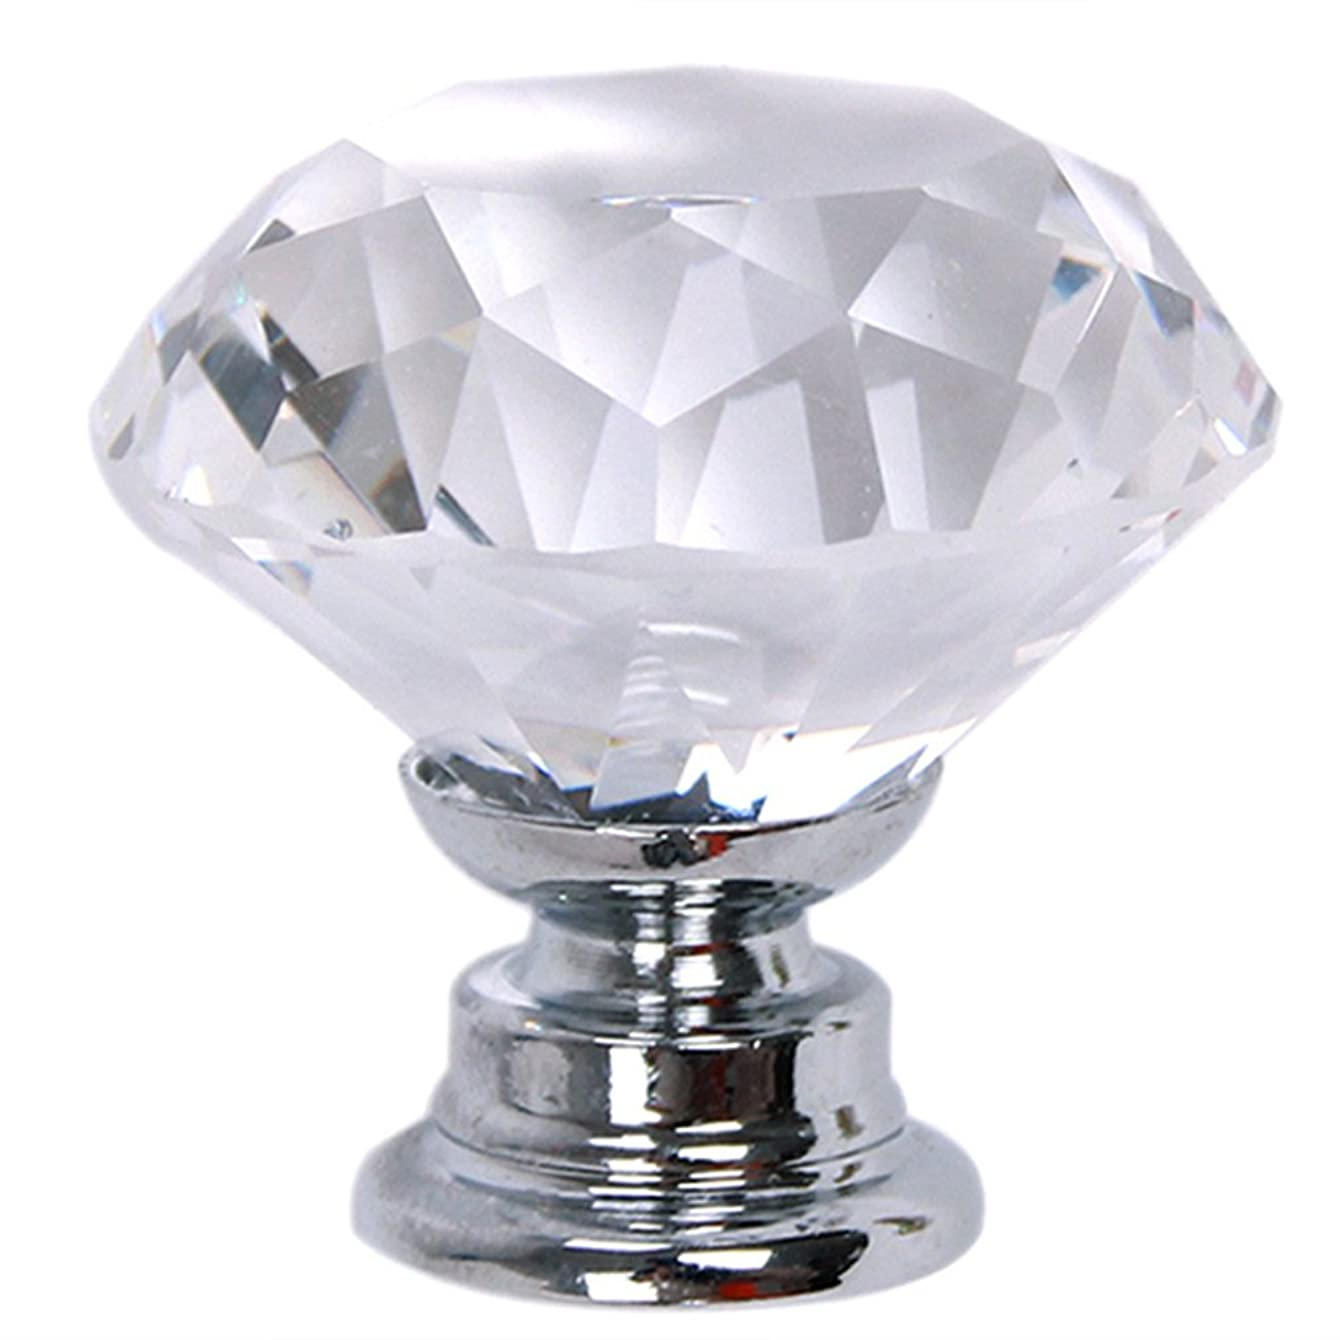 Dolland 1 Diamond Shape Crystal Glass Cabinet Knob Cupboard Drawer Pull Handle/Great for Cupboard, Kitchen and Bathroom Cabinets, Shutters, etc ,White